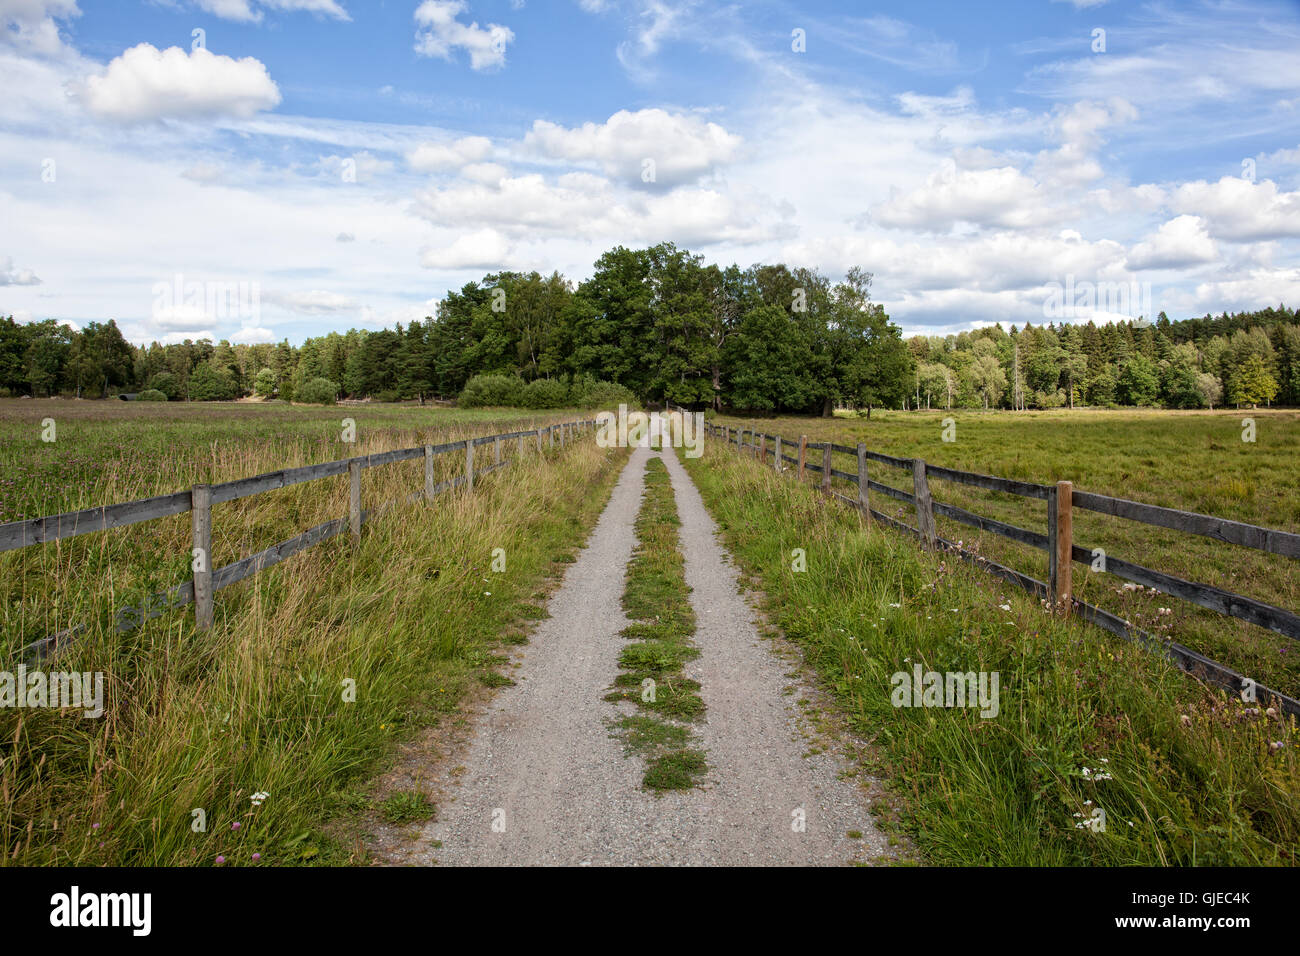 Leading line of country road - Stock Image